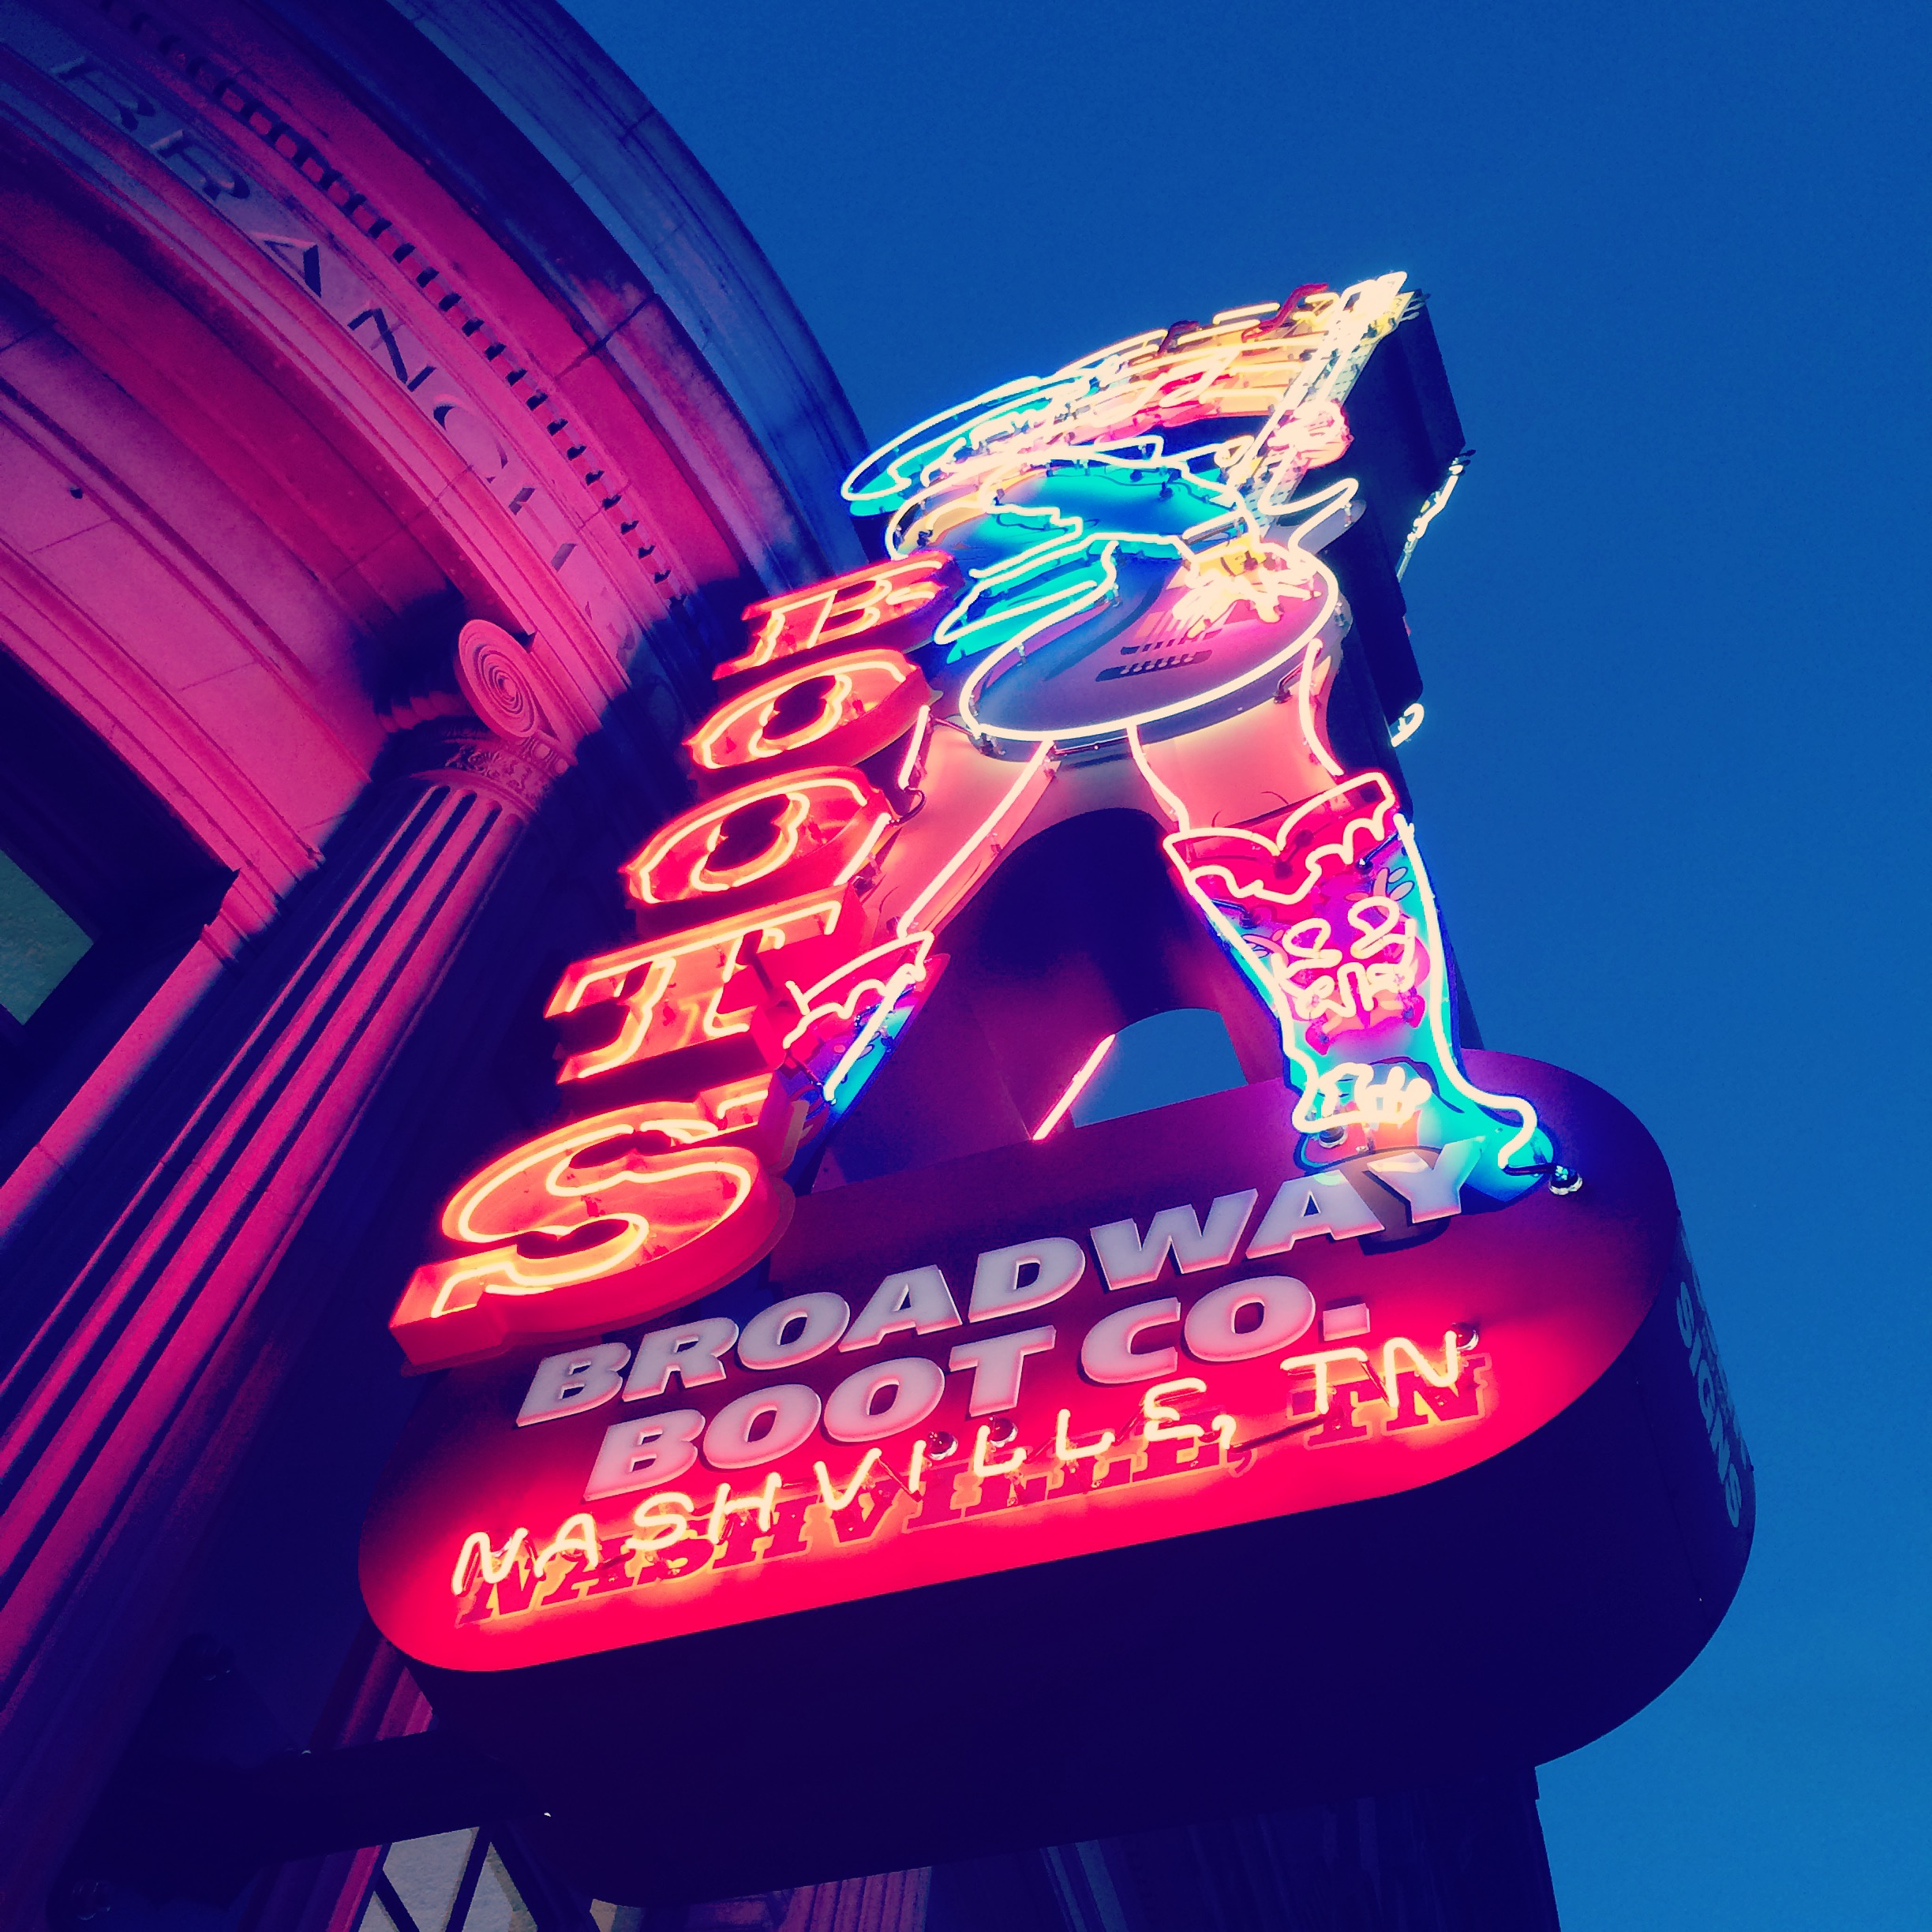 Experience Nashville S Greatest Events Travel With Red Roof